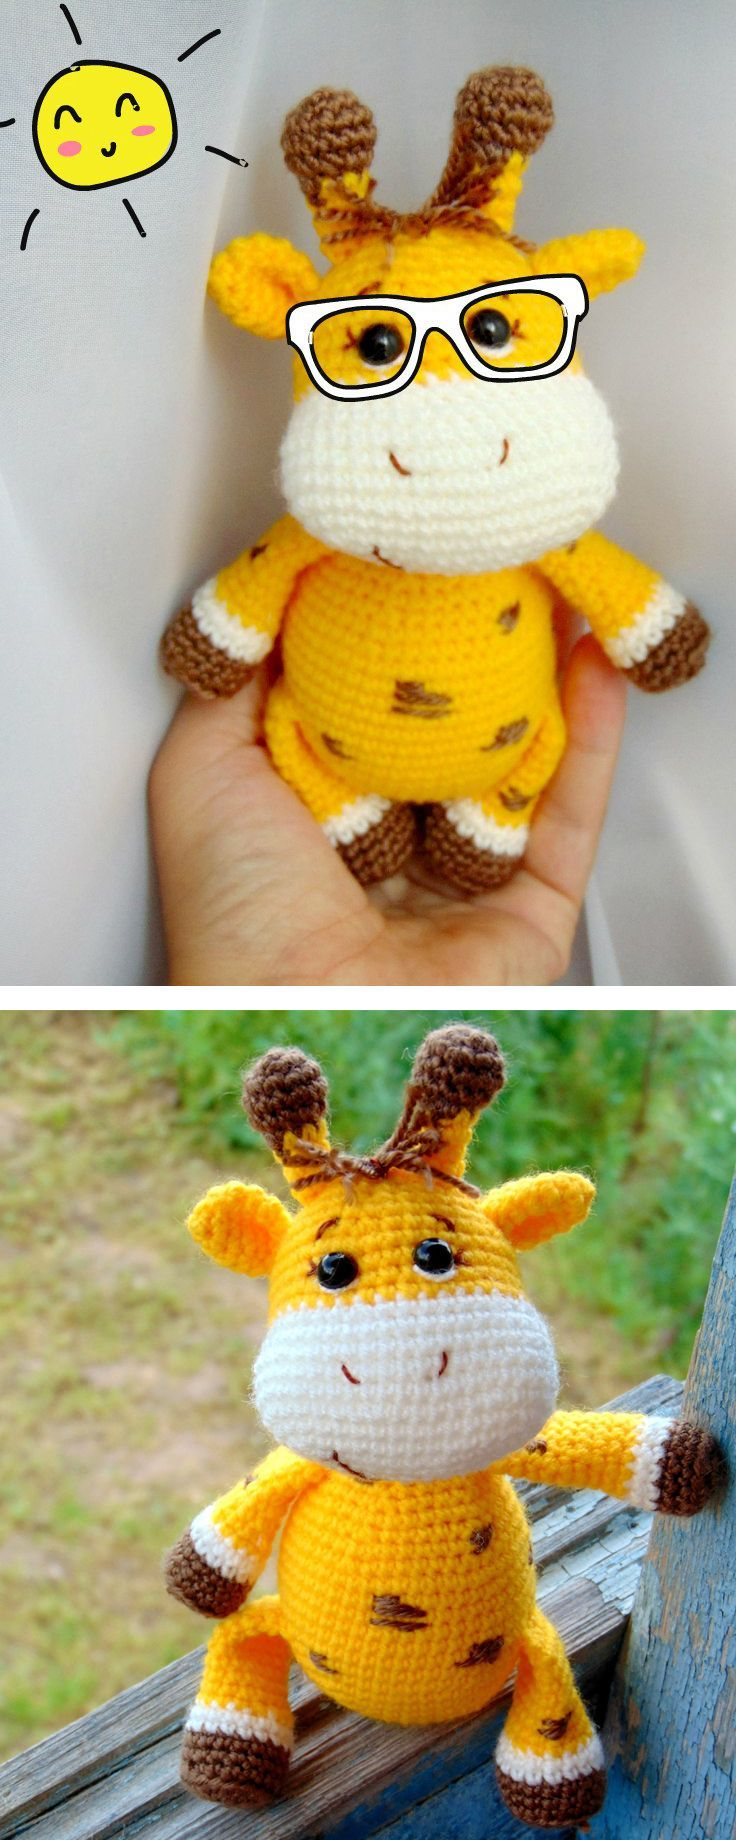 Free amigurumi pattern. Baby giraffe wishes you a great summer time!